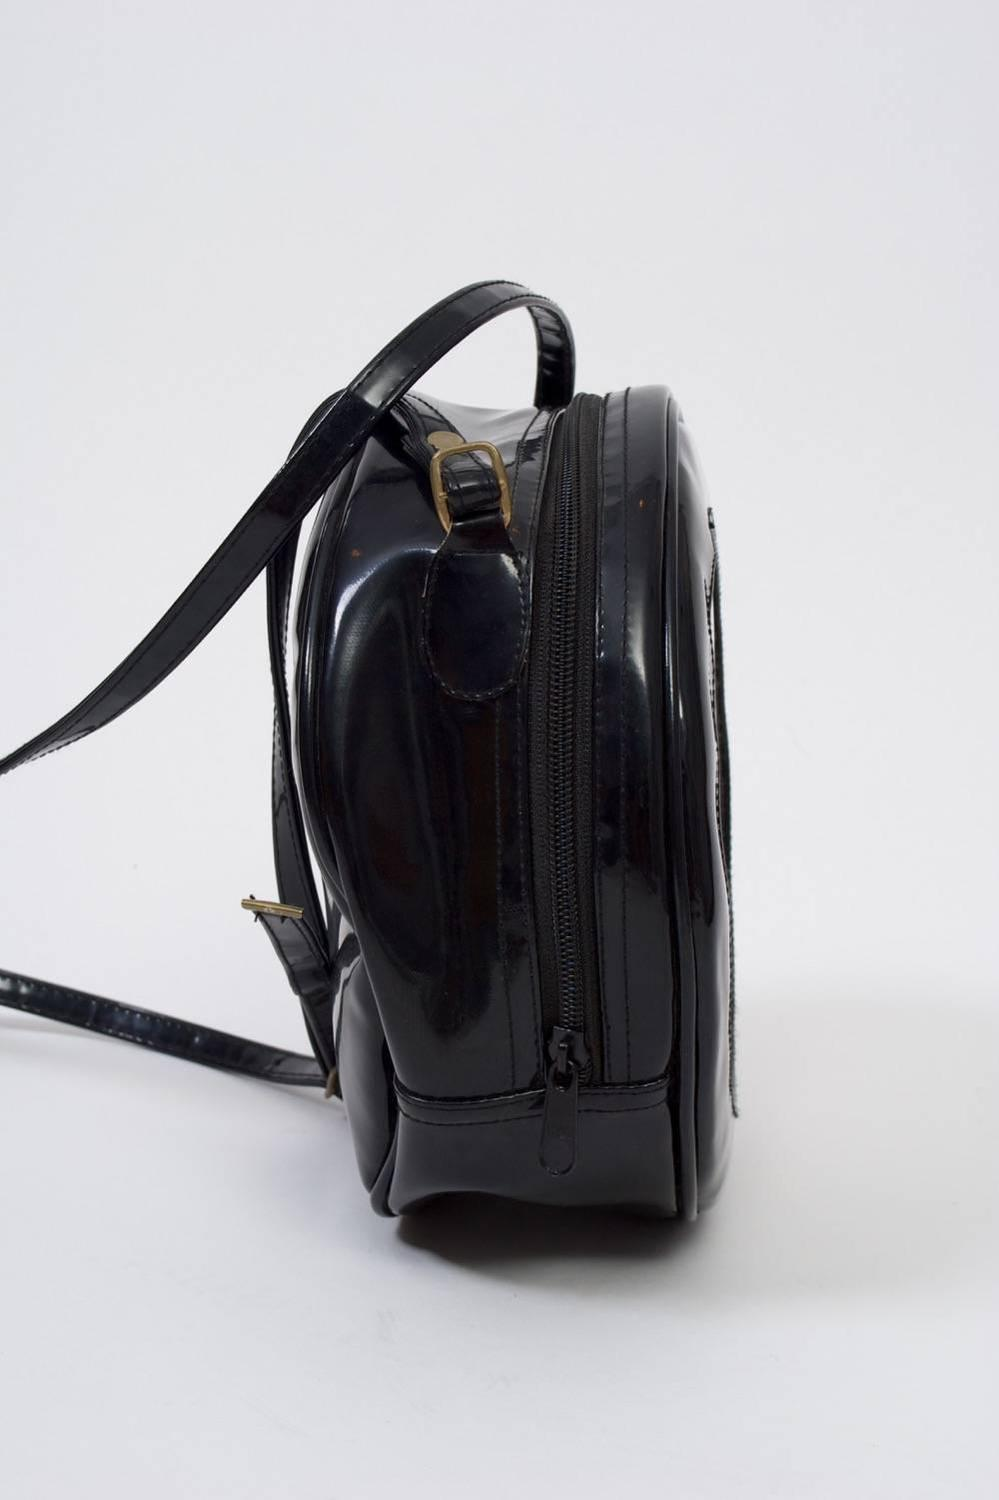 1980s Clock Shoulder Bag For Sale At 1stdibs